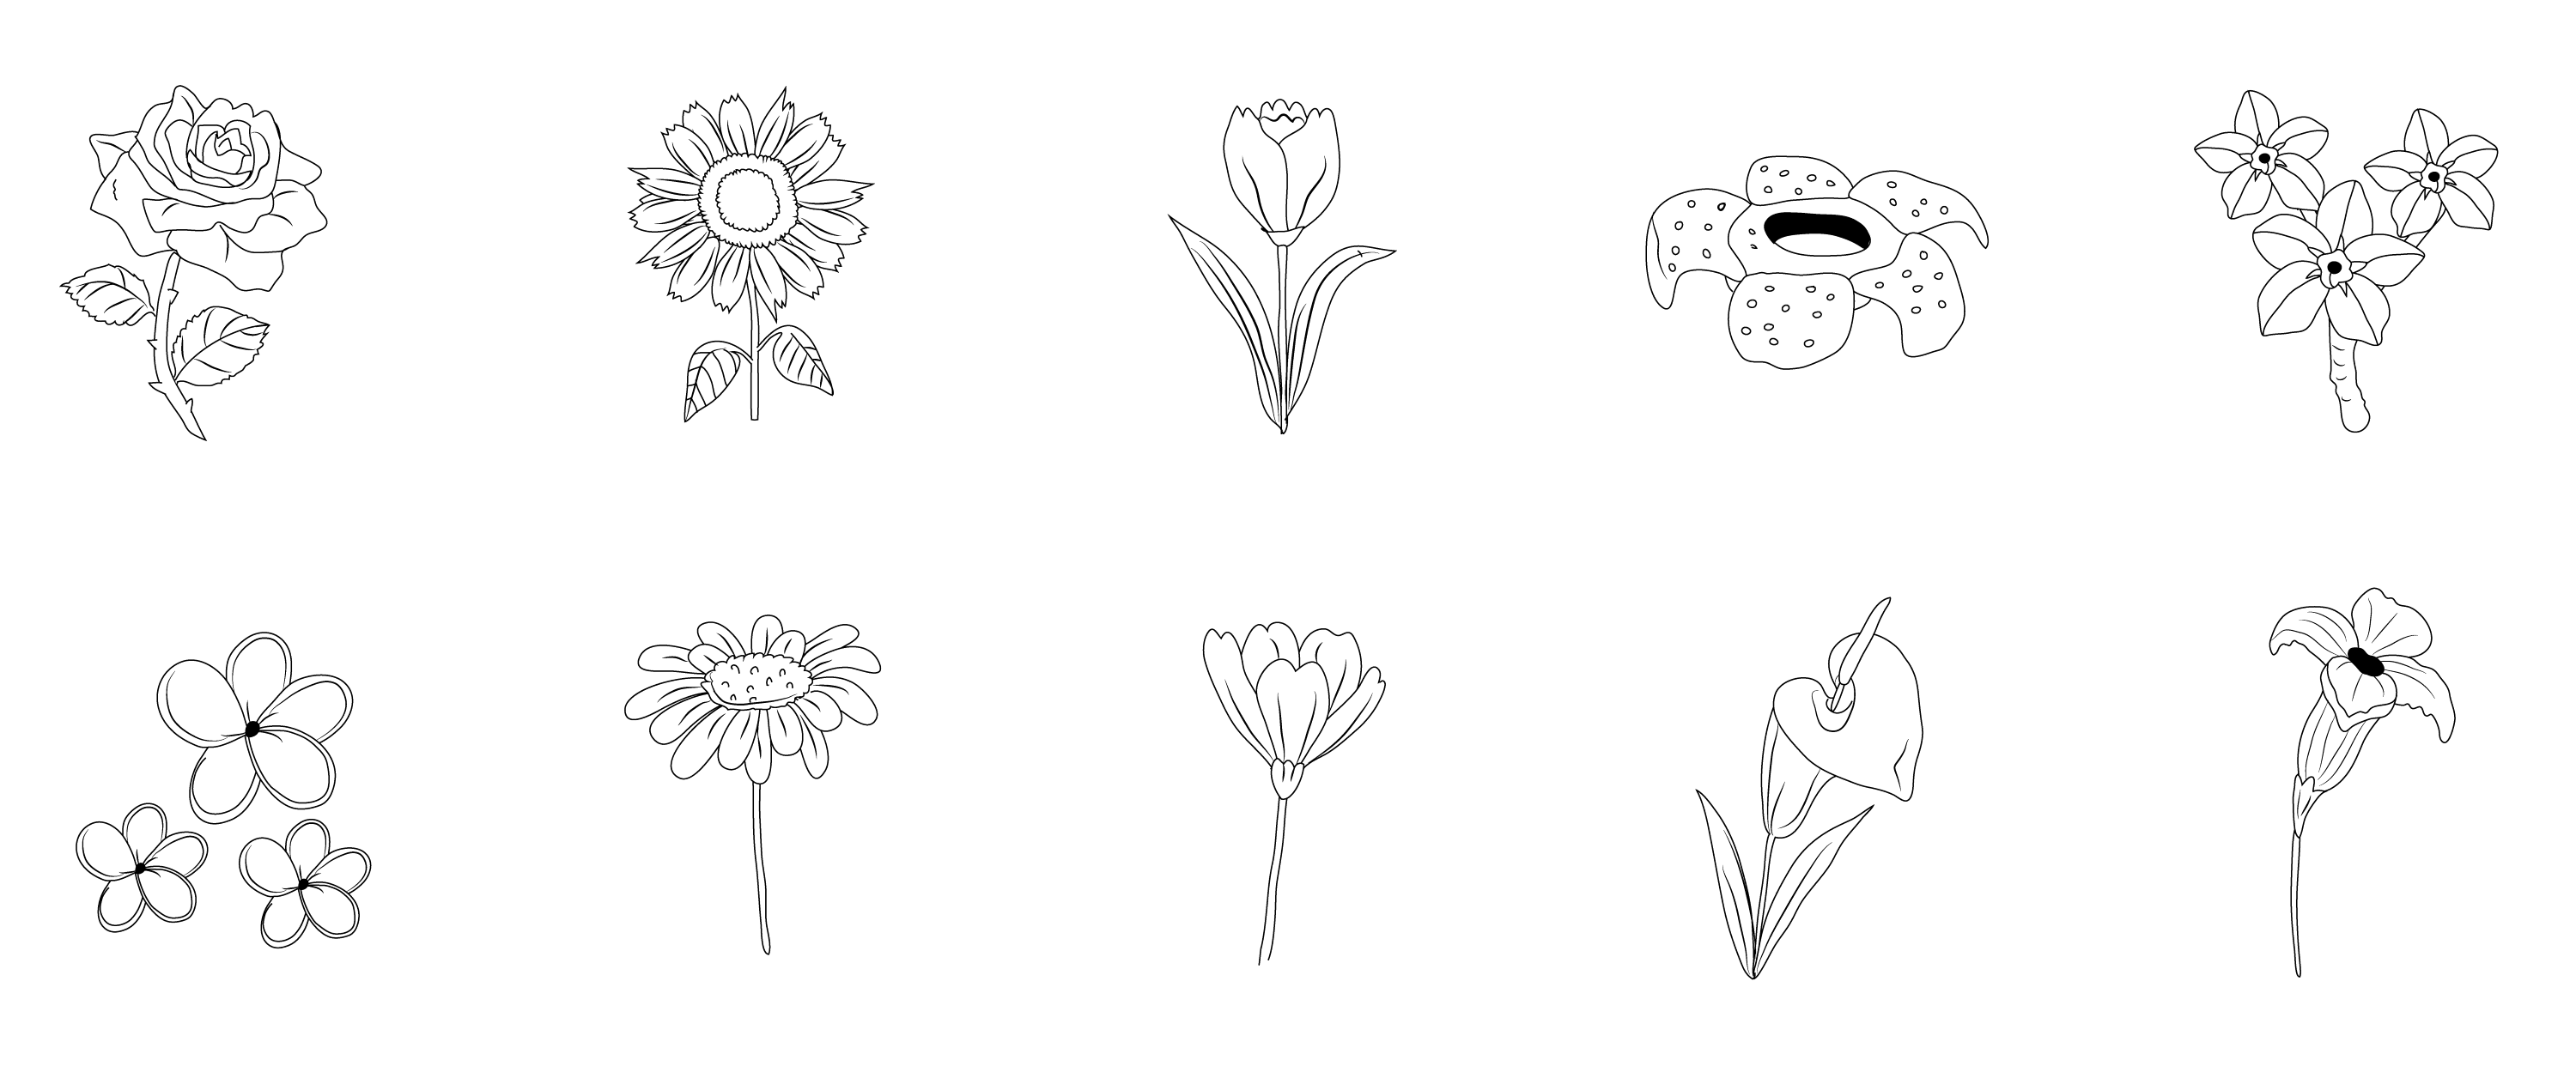 free clipart. line drawings of flowers - photo #33